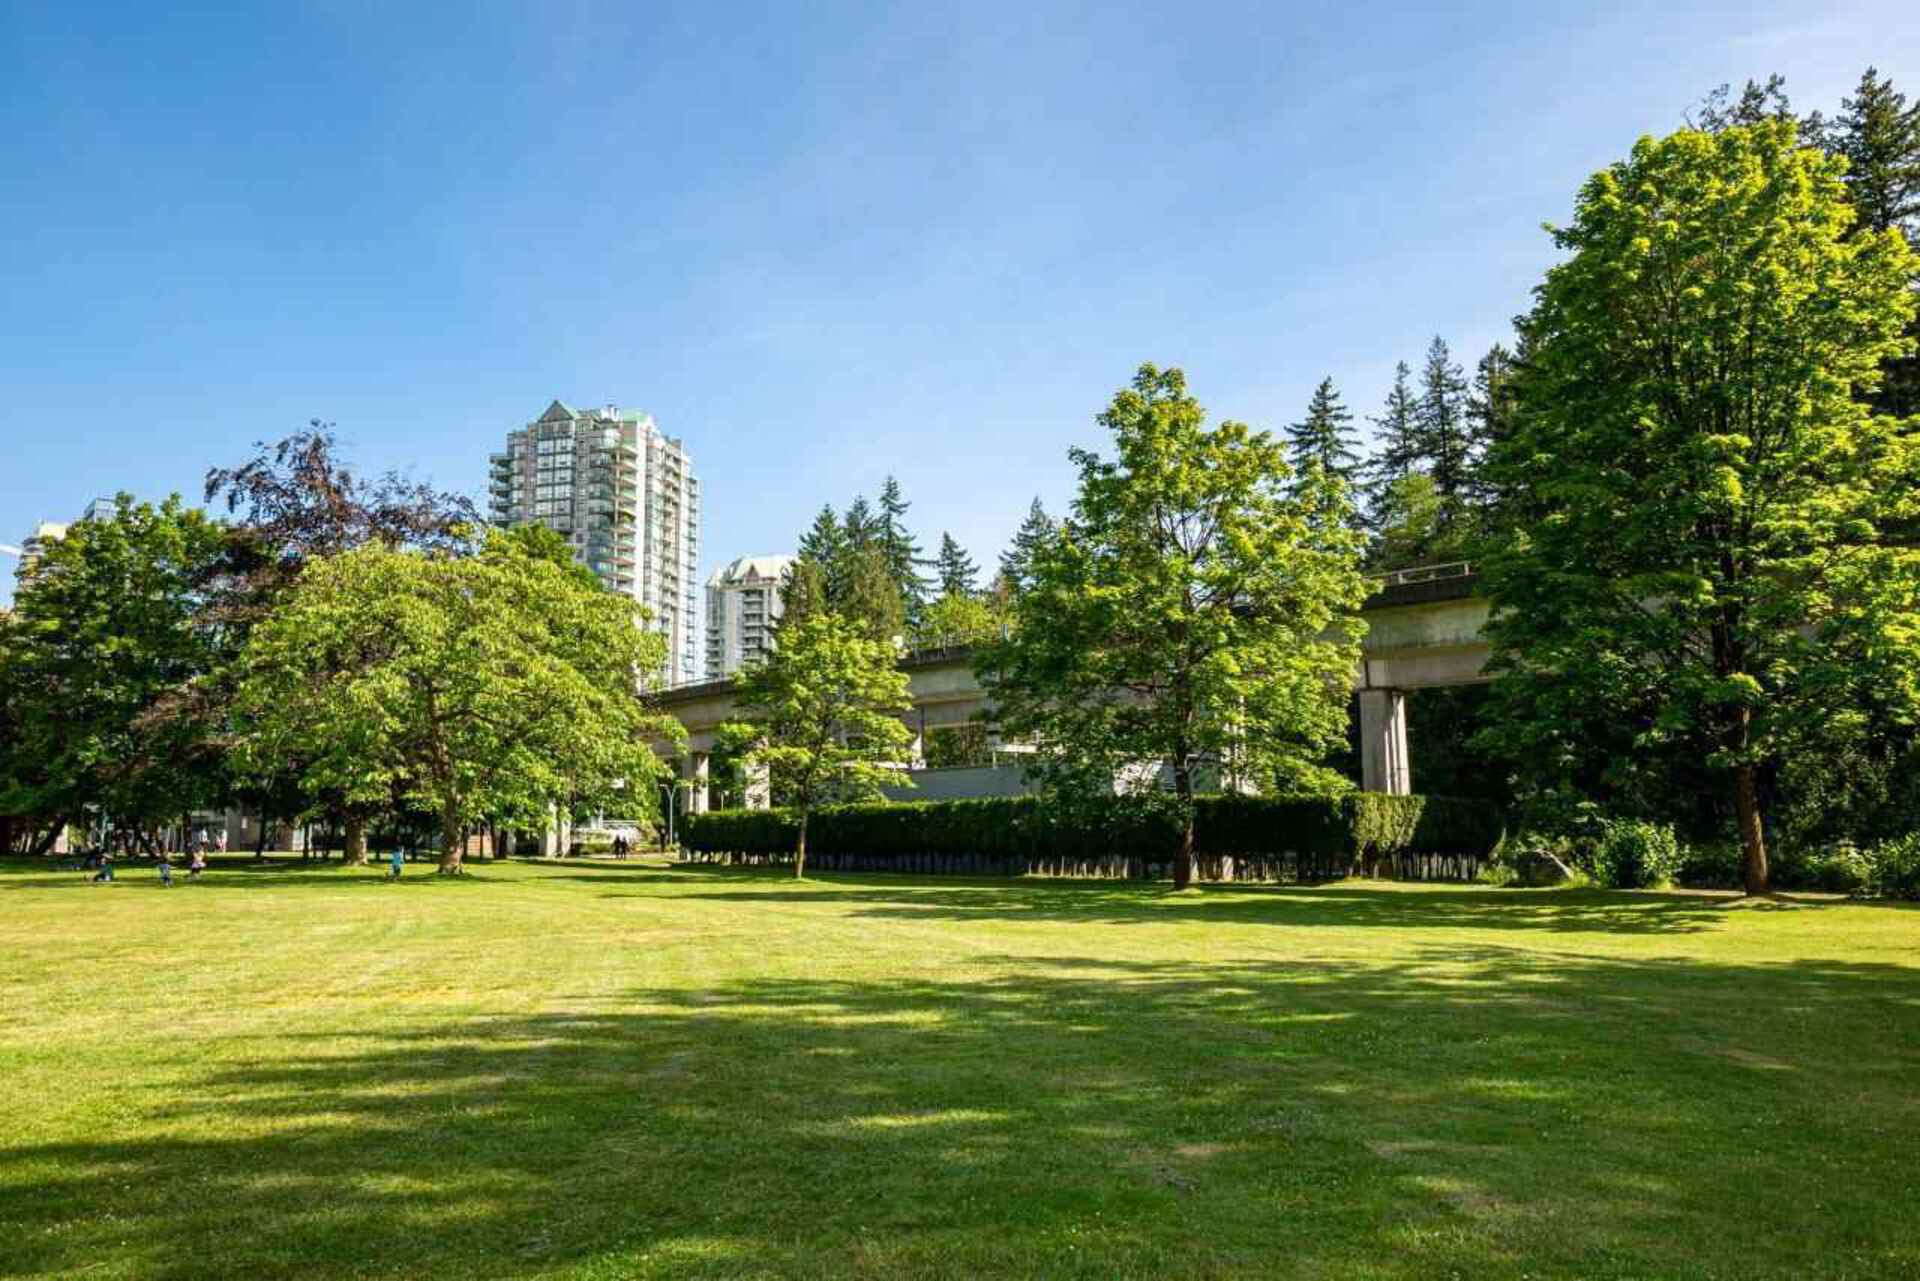 5932-patterson-avenue-metrotown-burnaby-south-17 at 408 - 5932 Patterson Avenue, Metrotown, Burnaby South